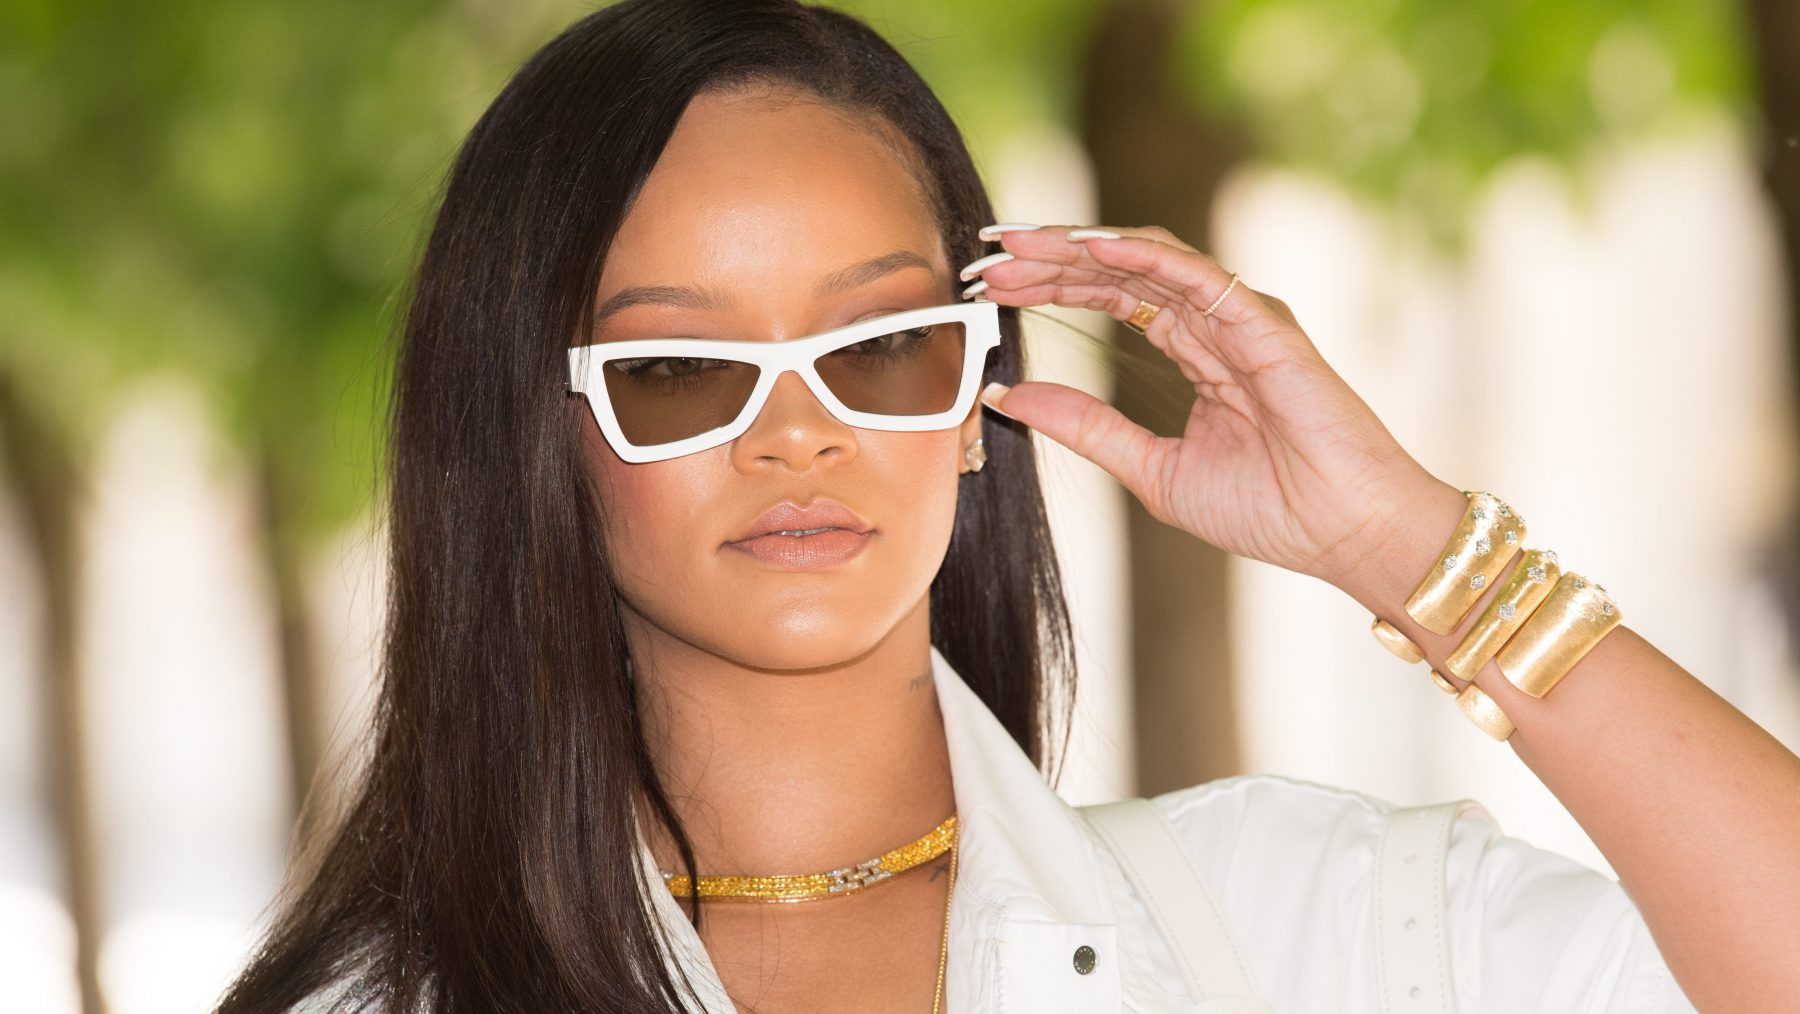 rihanna-lof-voor-model-littekens